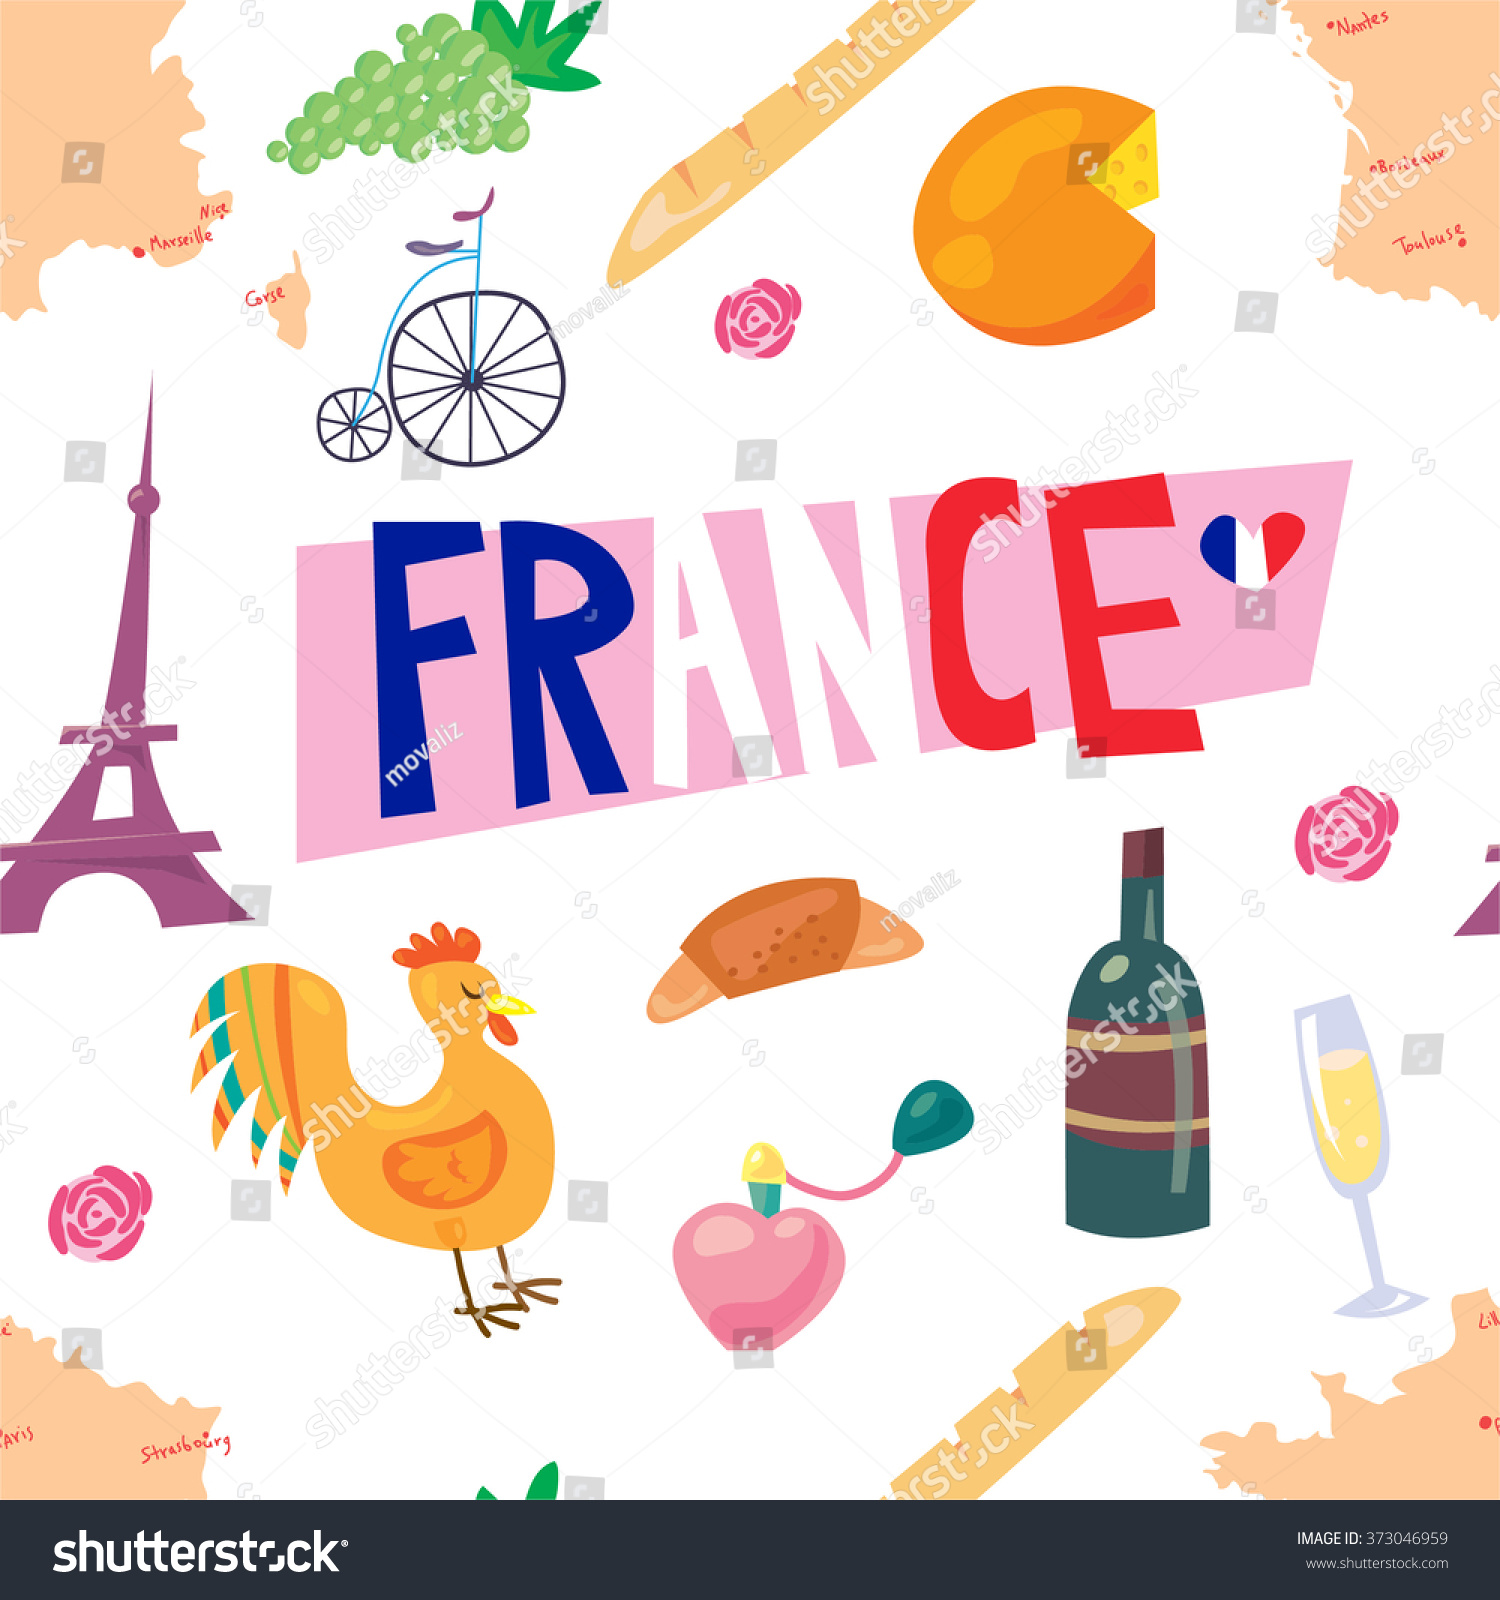 Funny Cartoon Pattern French Culture Symbols Stock Vector Royalty